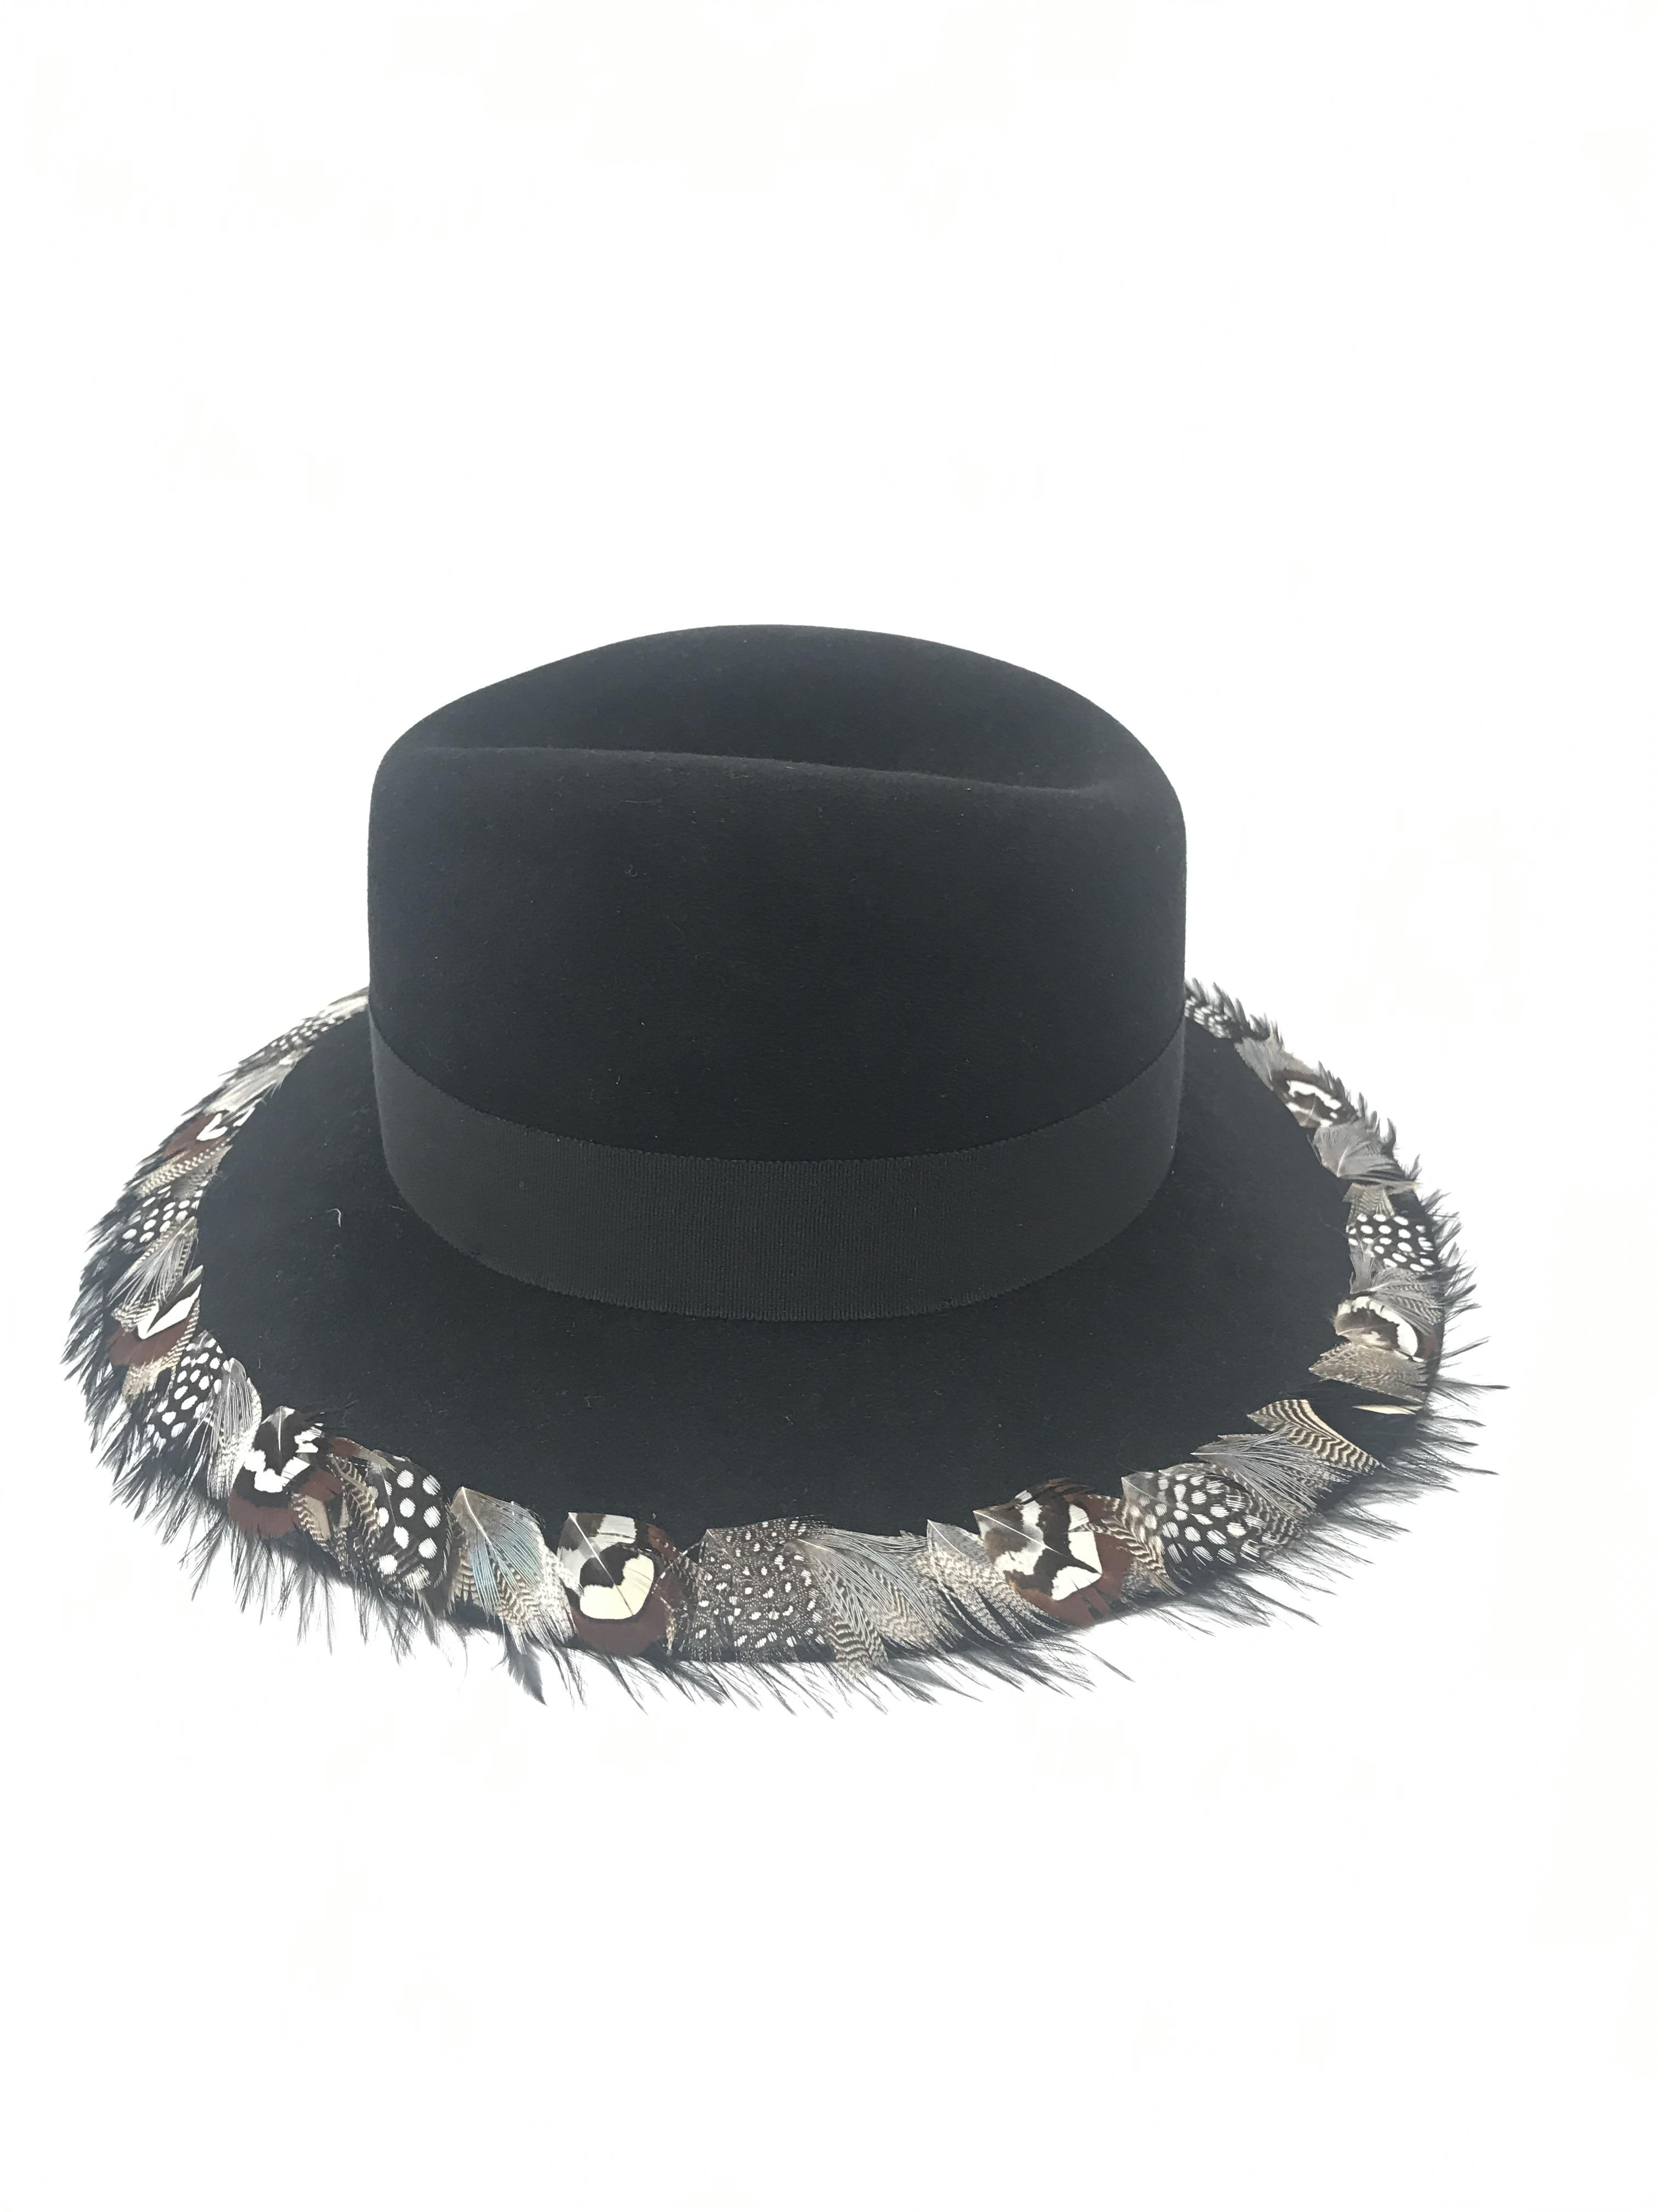 Chanel hat with Accessories Price: $895.99